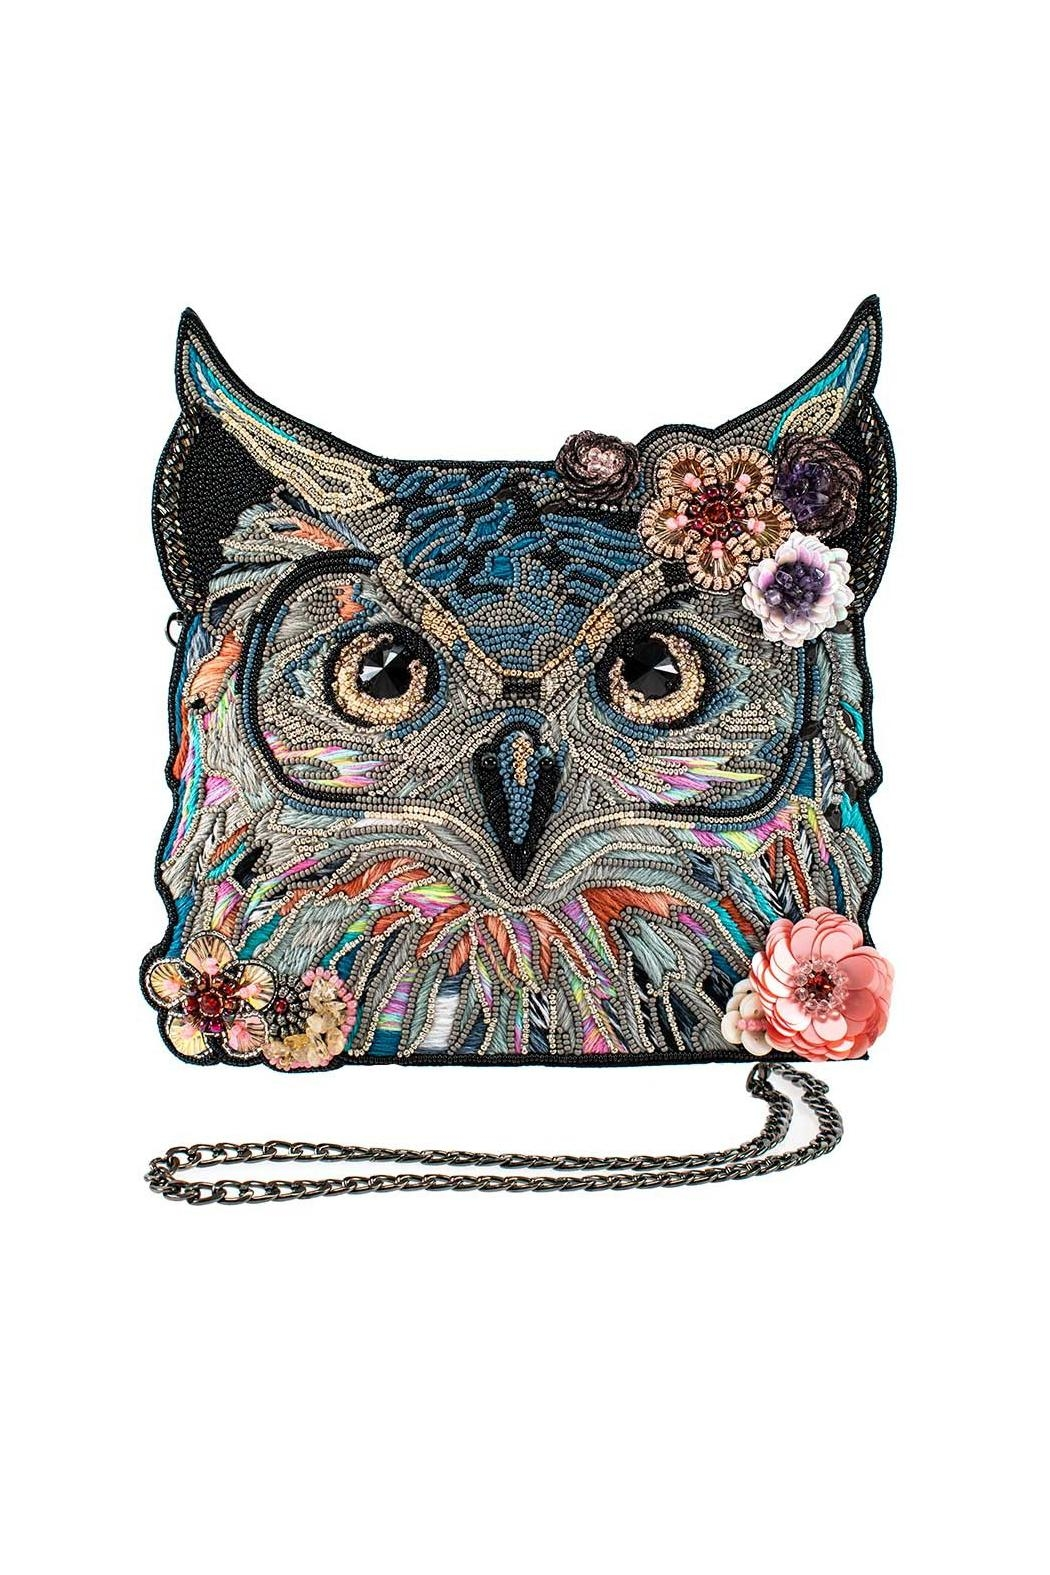 Mary Frances Spirit Owl Handbag - Main Image